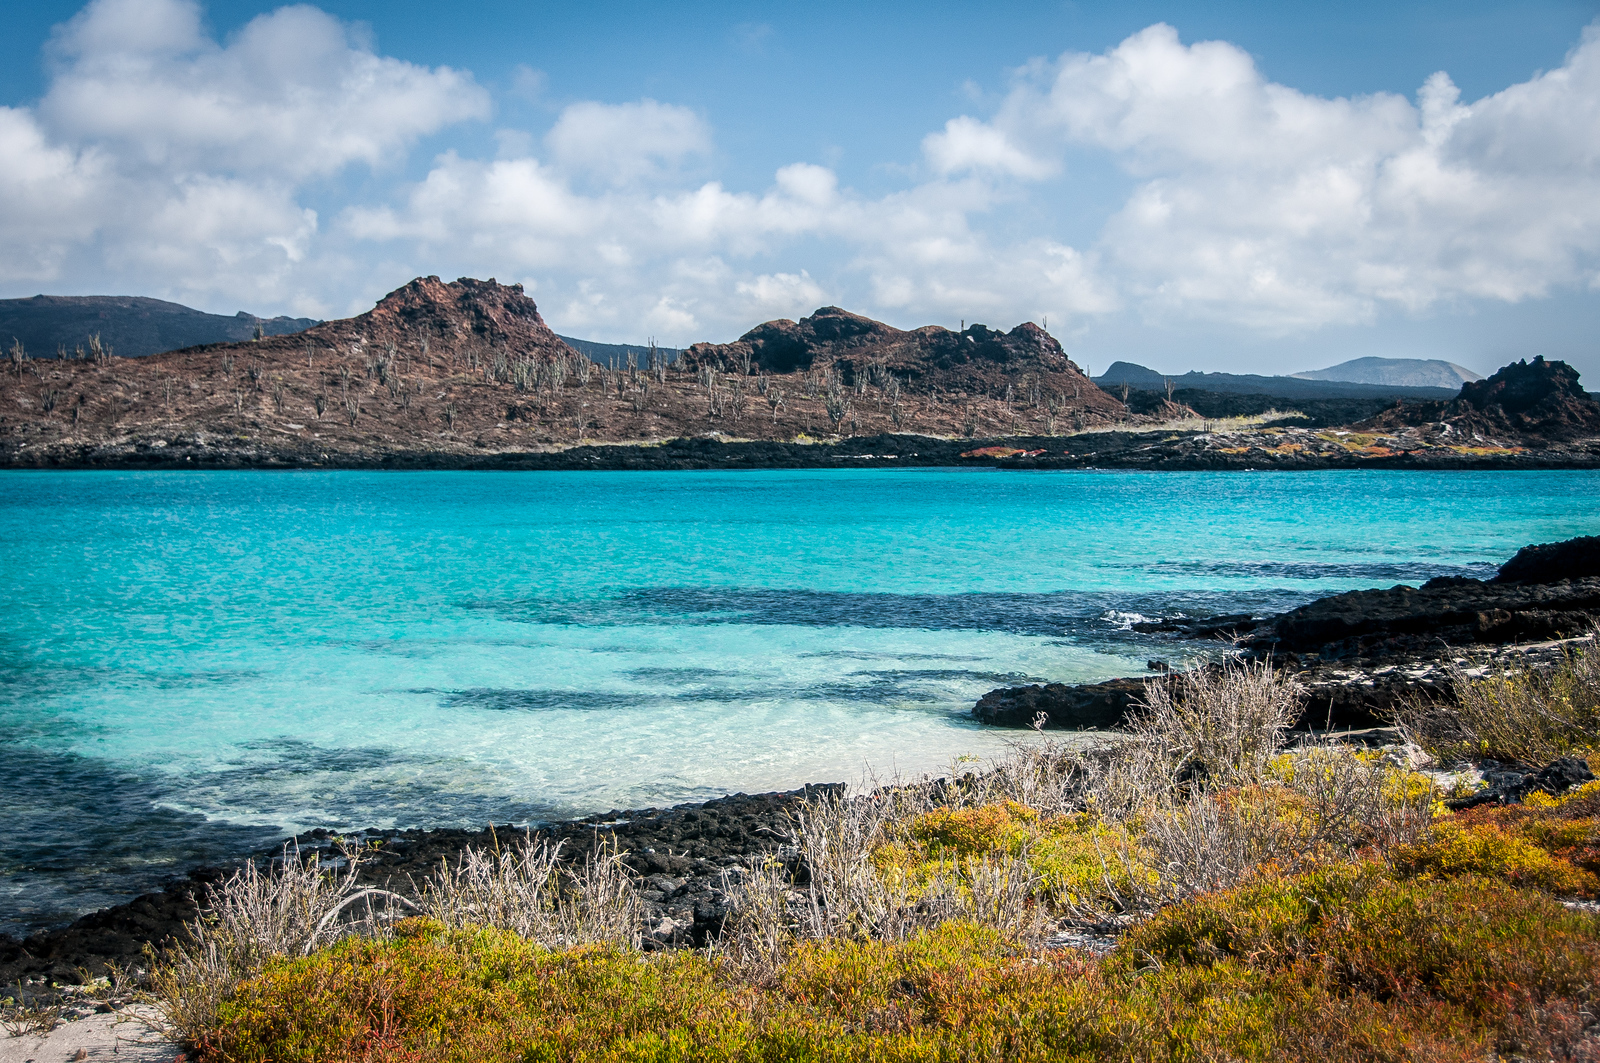 Travel to Galapagos Islands